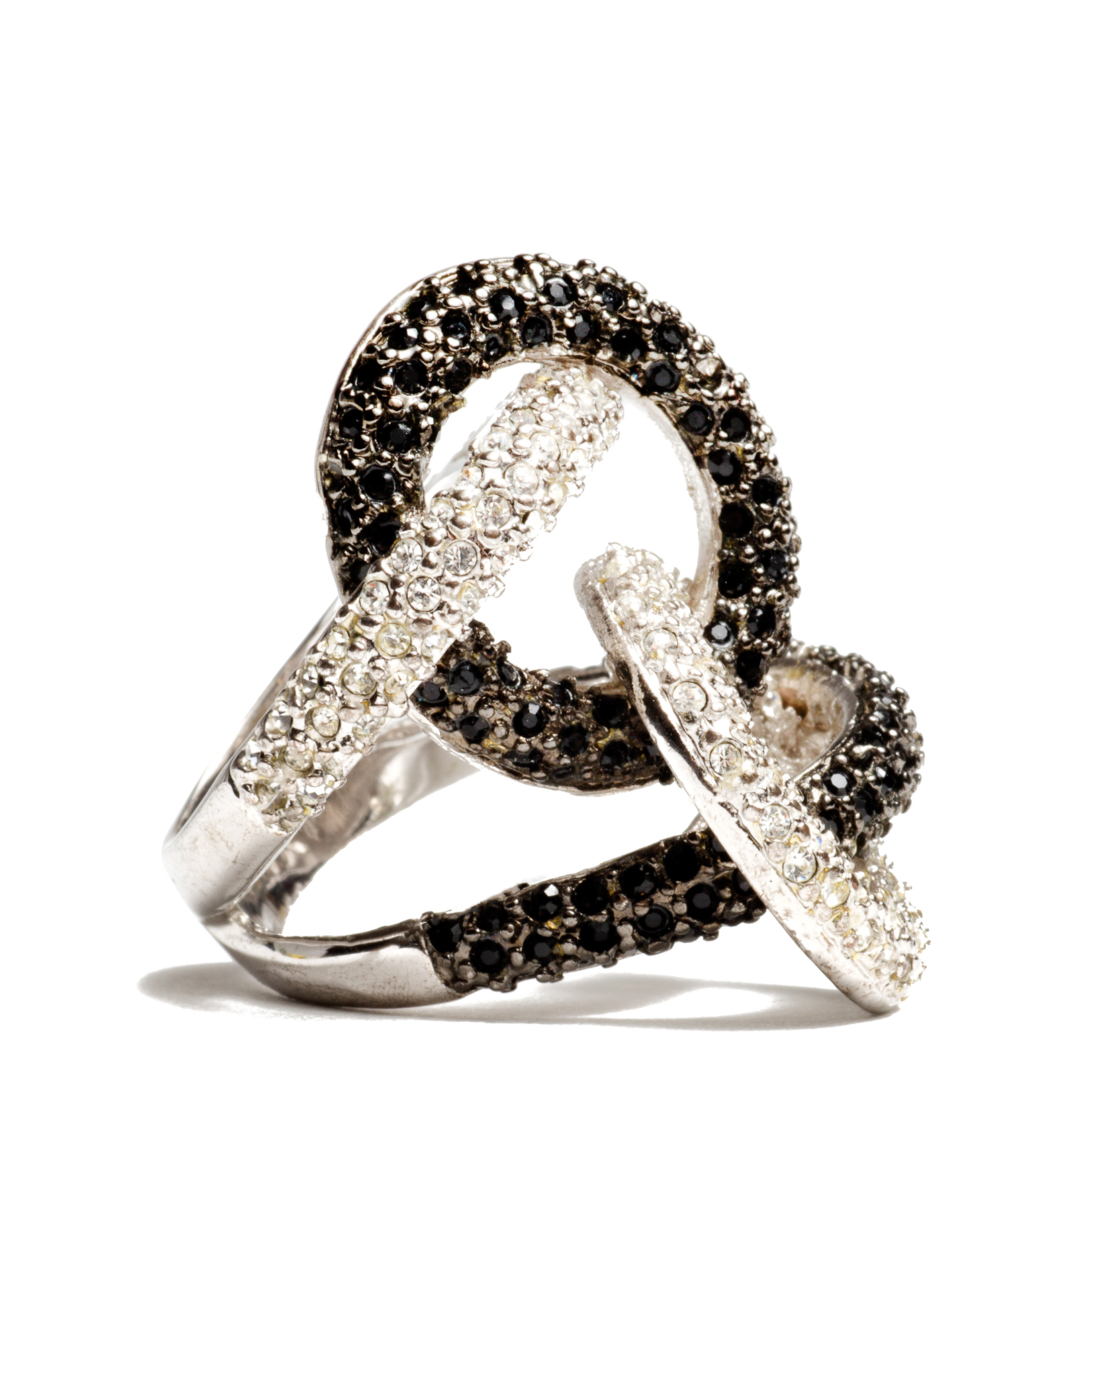 Intertwined Circle Silver and Black Crystal Cocktail Ring, circa 1980's